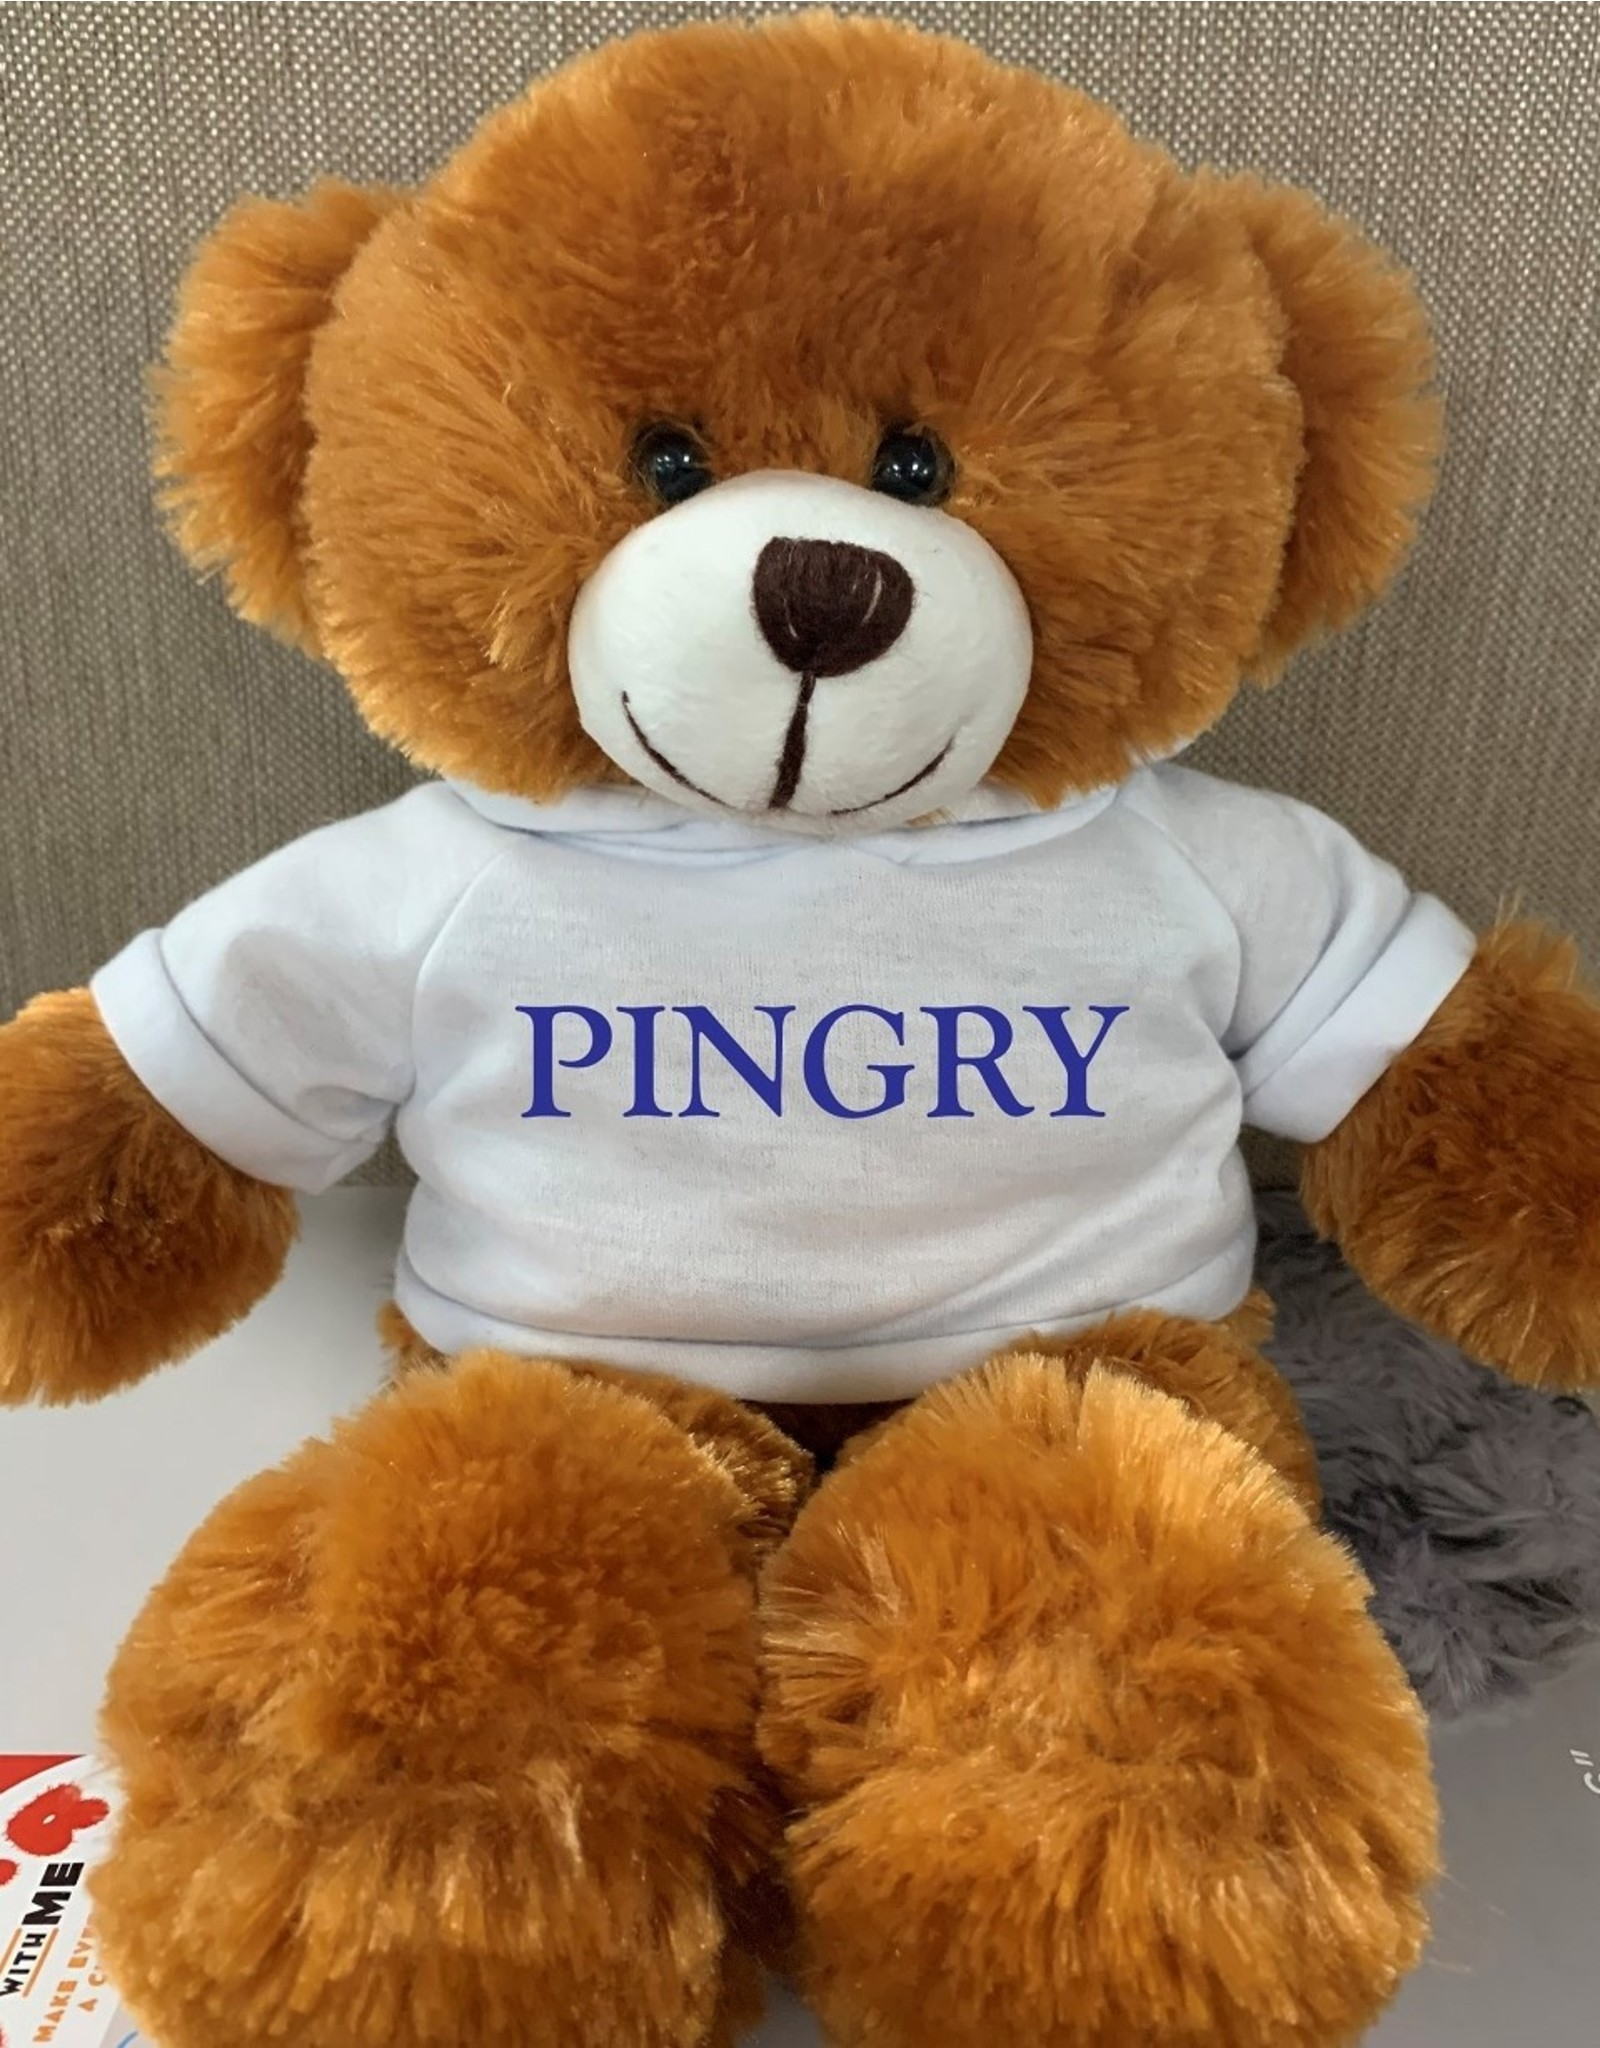 Teddy Bear-Pingry 2021-12 inch with white hoodie